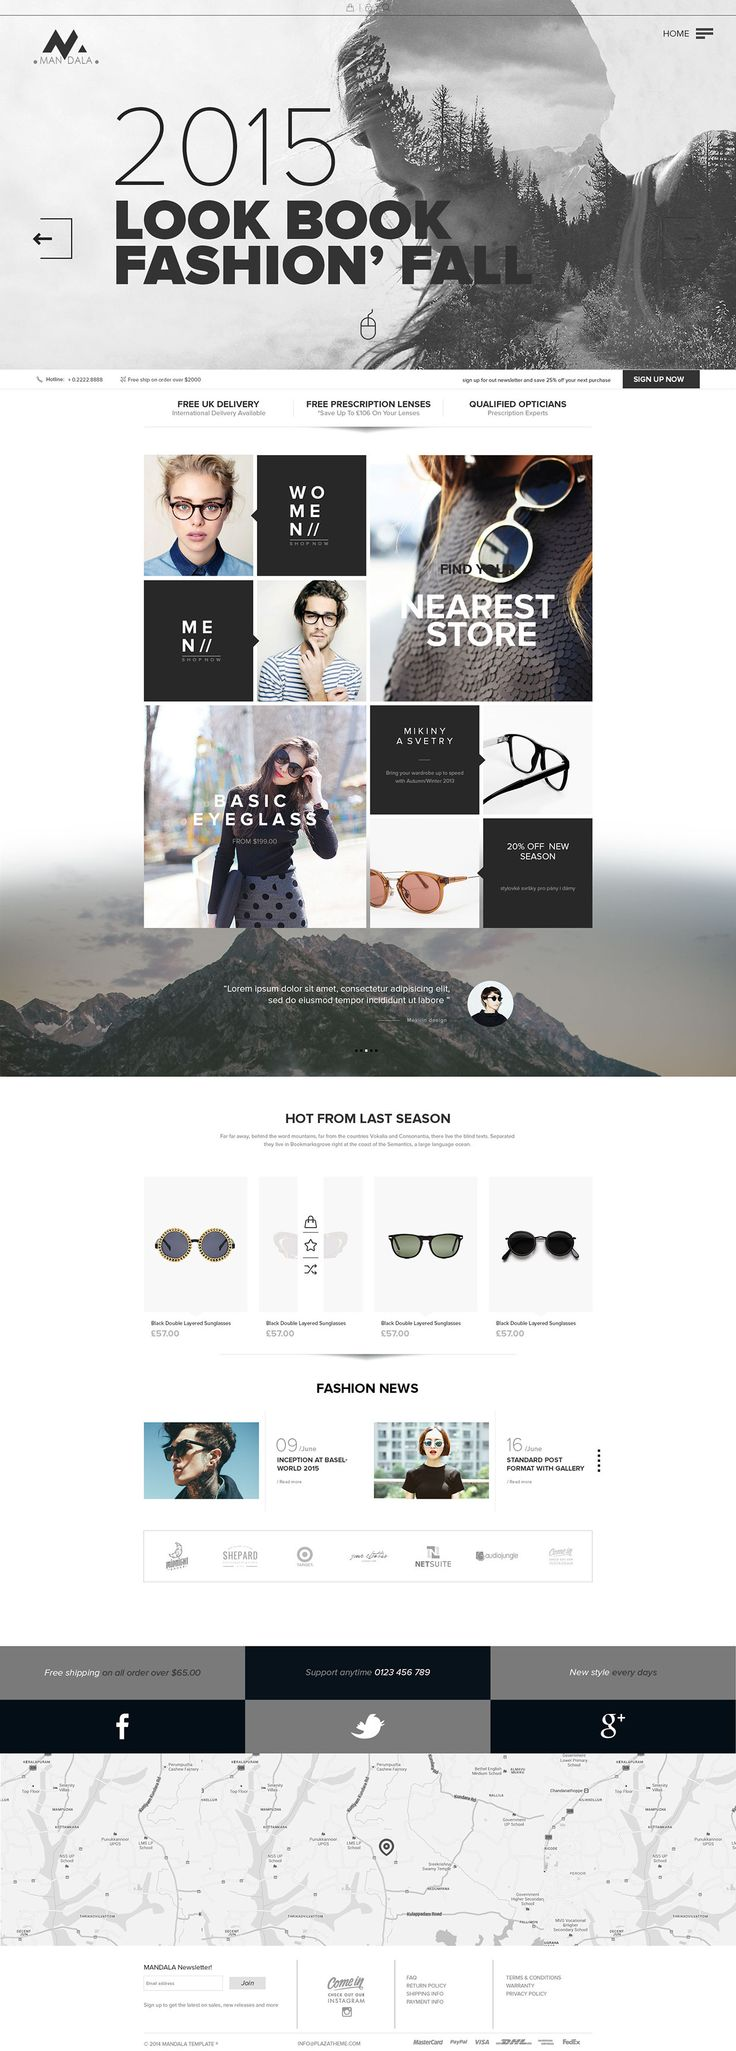 Awesome Website Design - Fashion Store